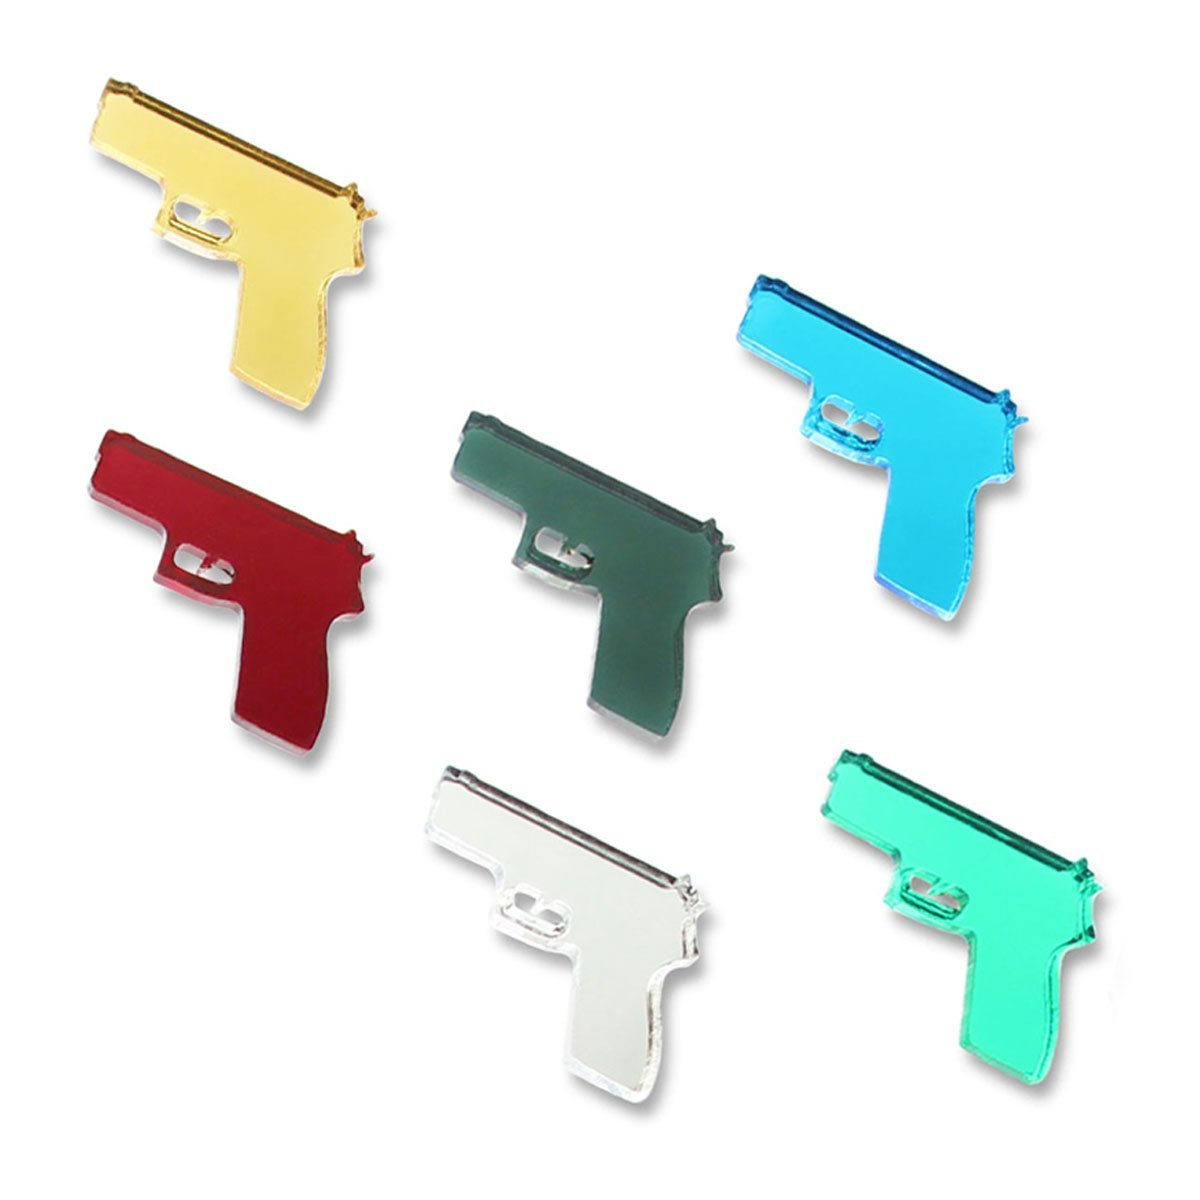 HANDGUNS Magnetic Wine Glass Charms (Set of 6) by Claim Your Glass - Premium Drink Markers for Wine, Champagne, Beer, Cocktail Glasses - Includes Storage Case + Spare Magnet by Claim Your Glass (Image #2)